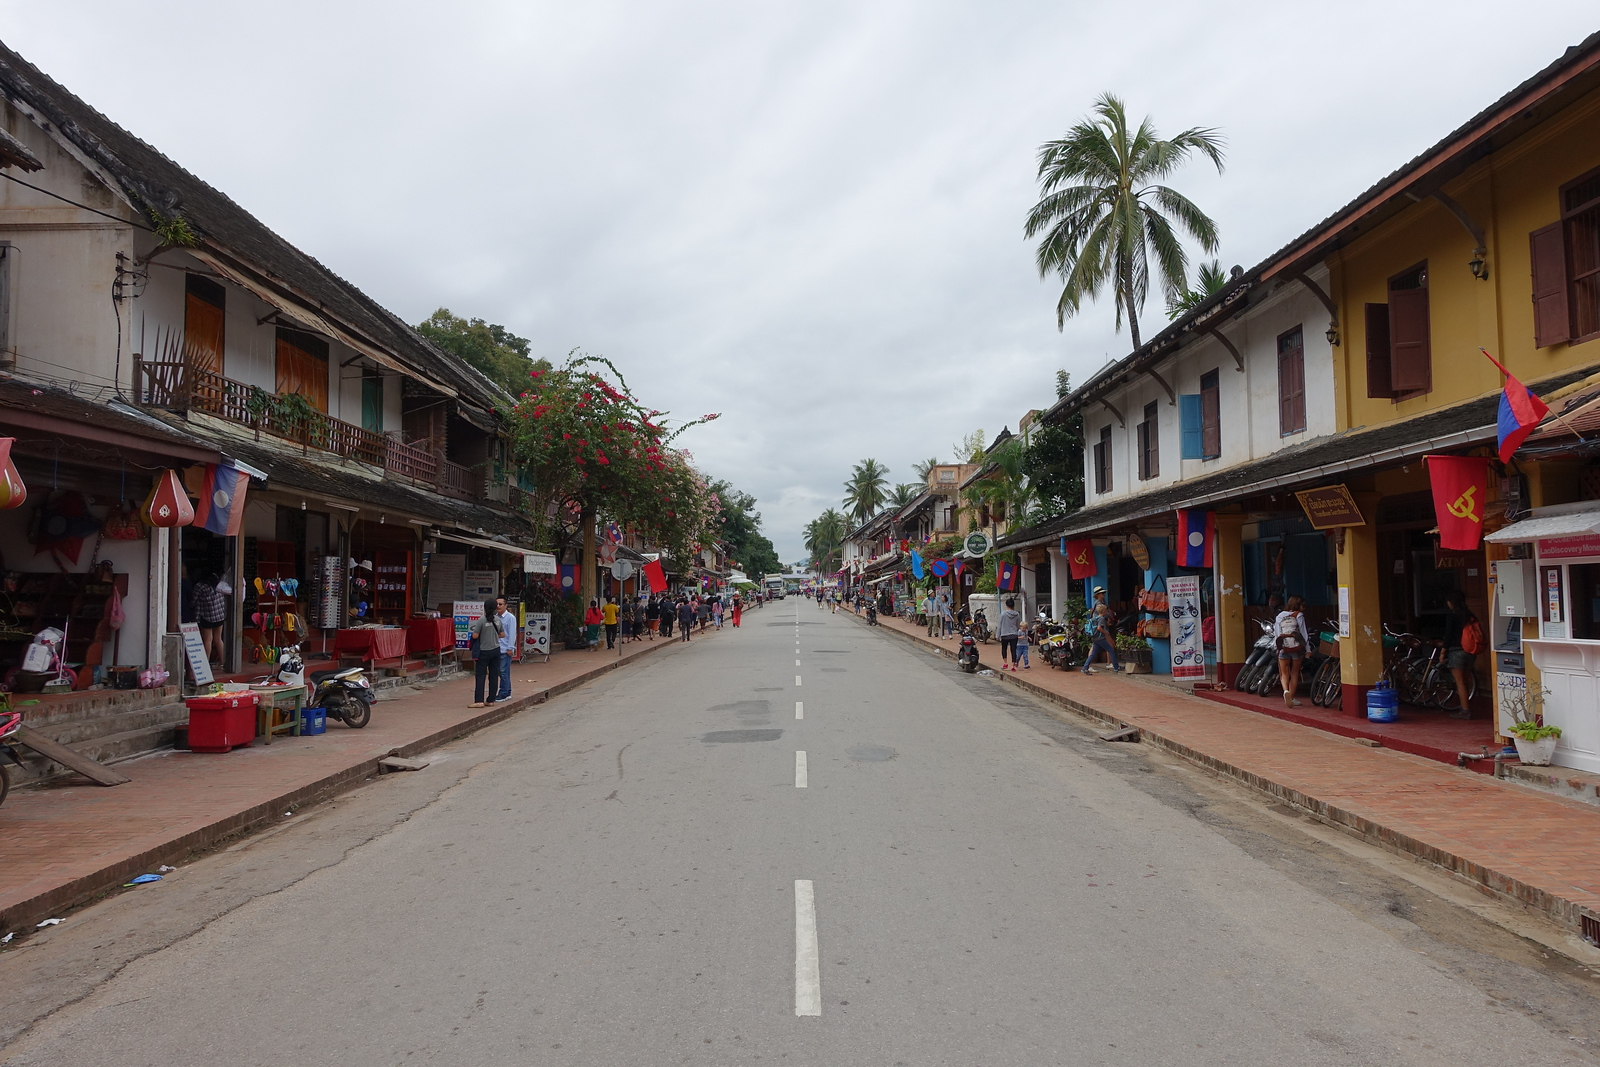 Luang Prabang – Our First Day